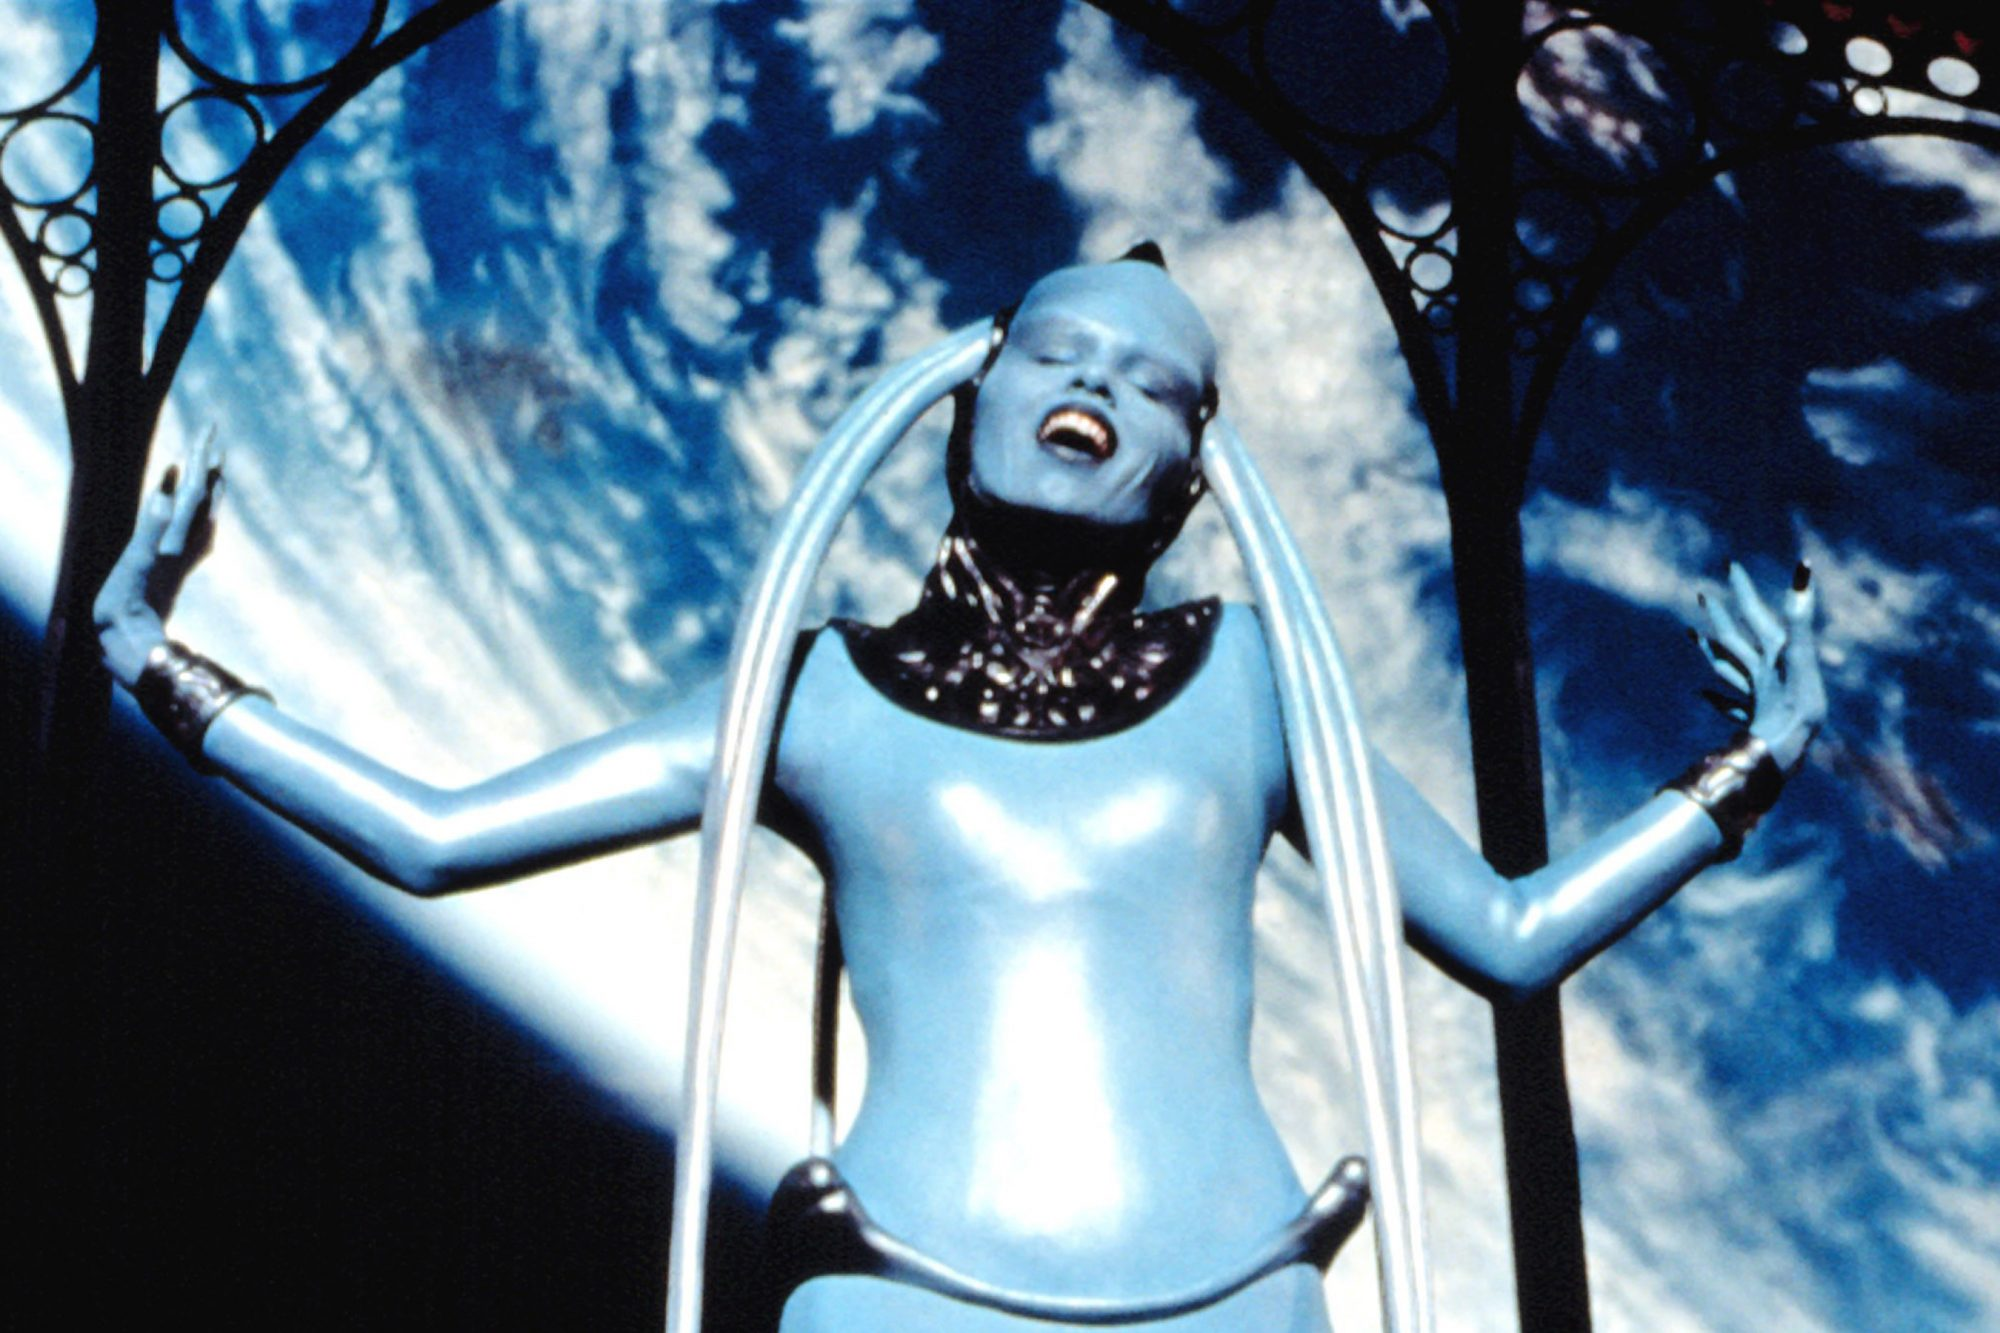 THE FIFTH ELEMENT, Maiwenn Le Besco as Diva, 1997. (c) Columbia Pictures/  Courtesy: Everett Collect